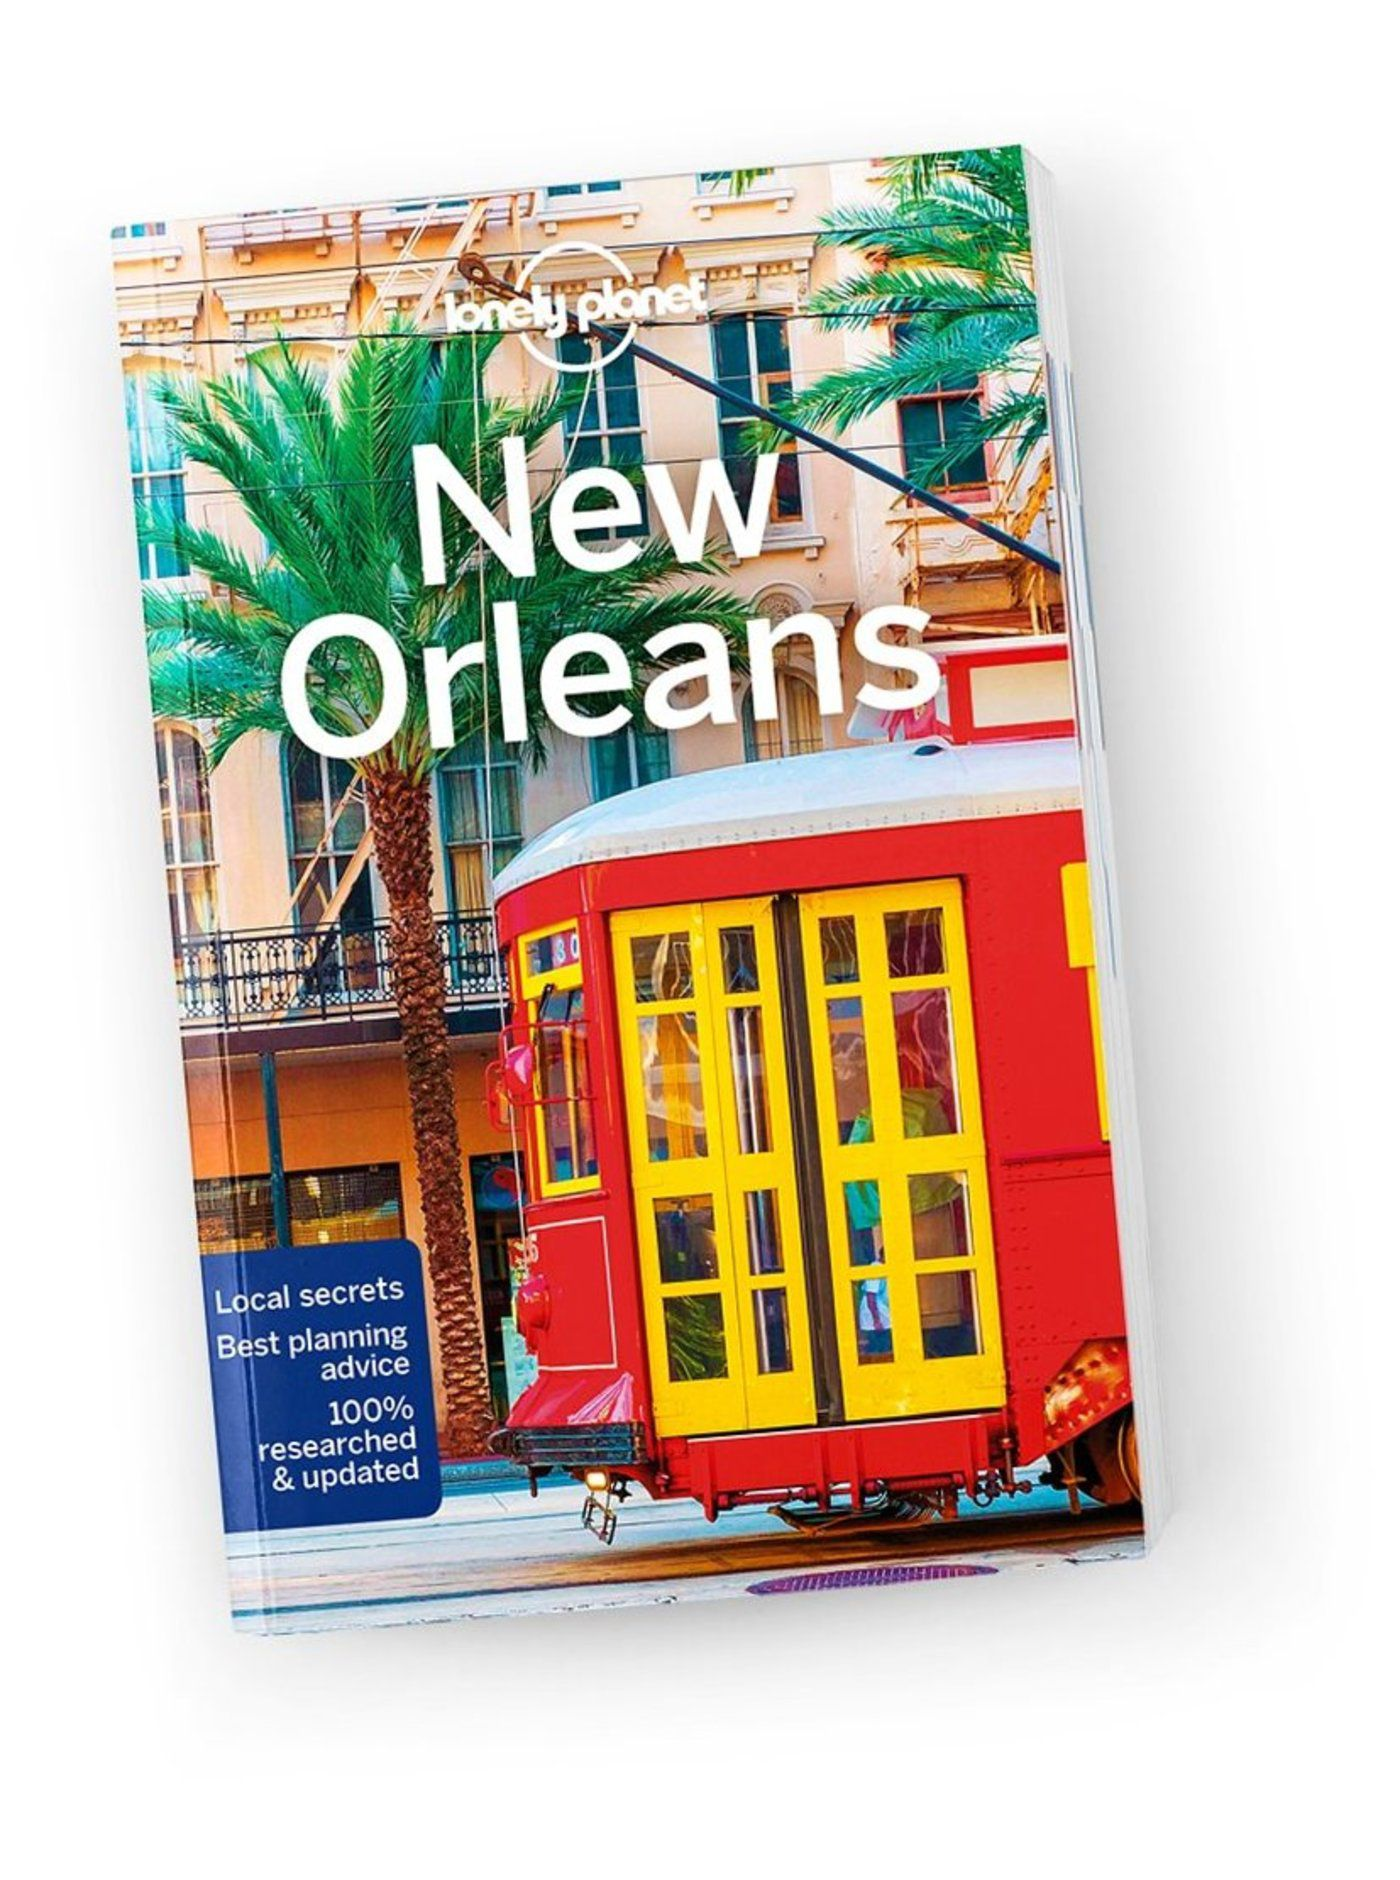 New Orleans city guide